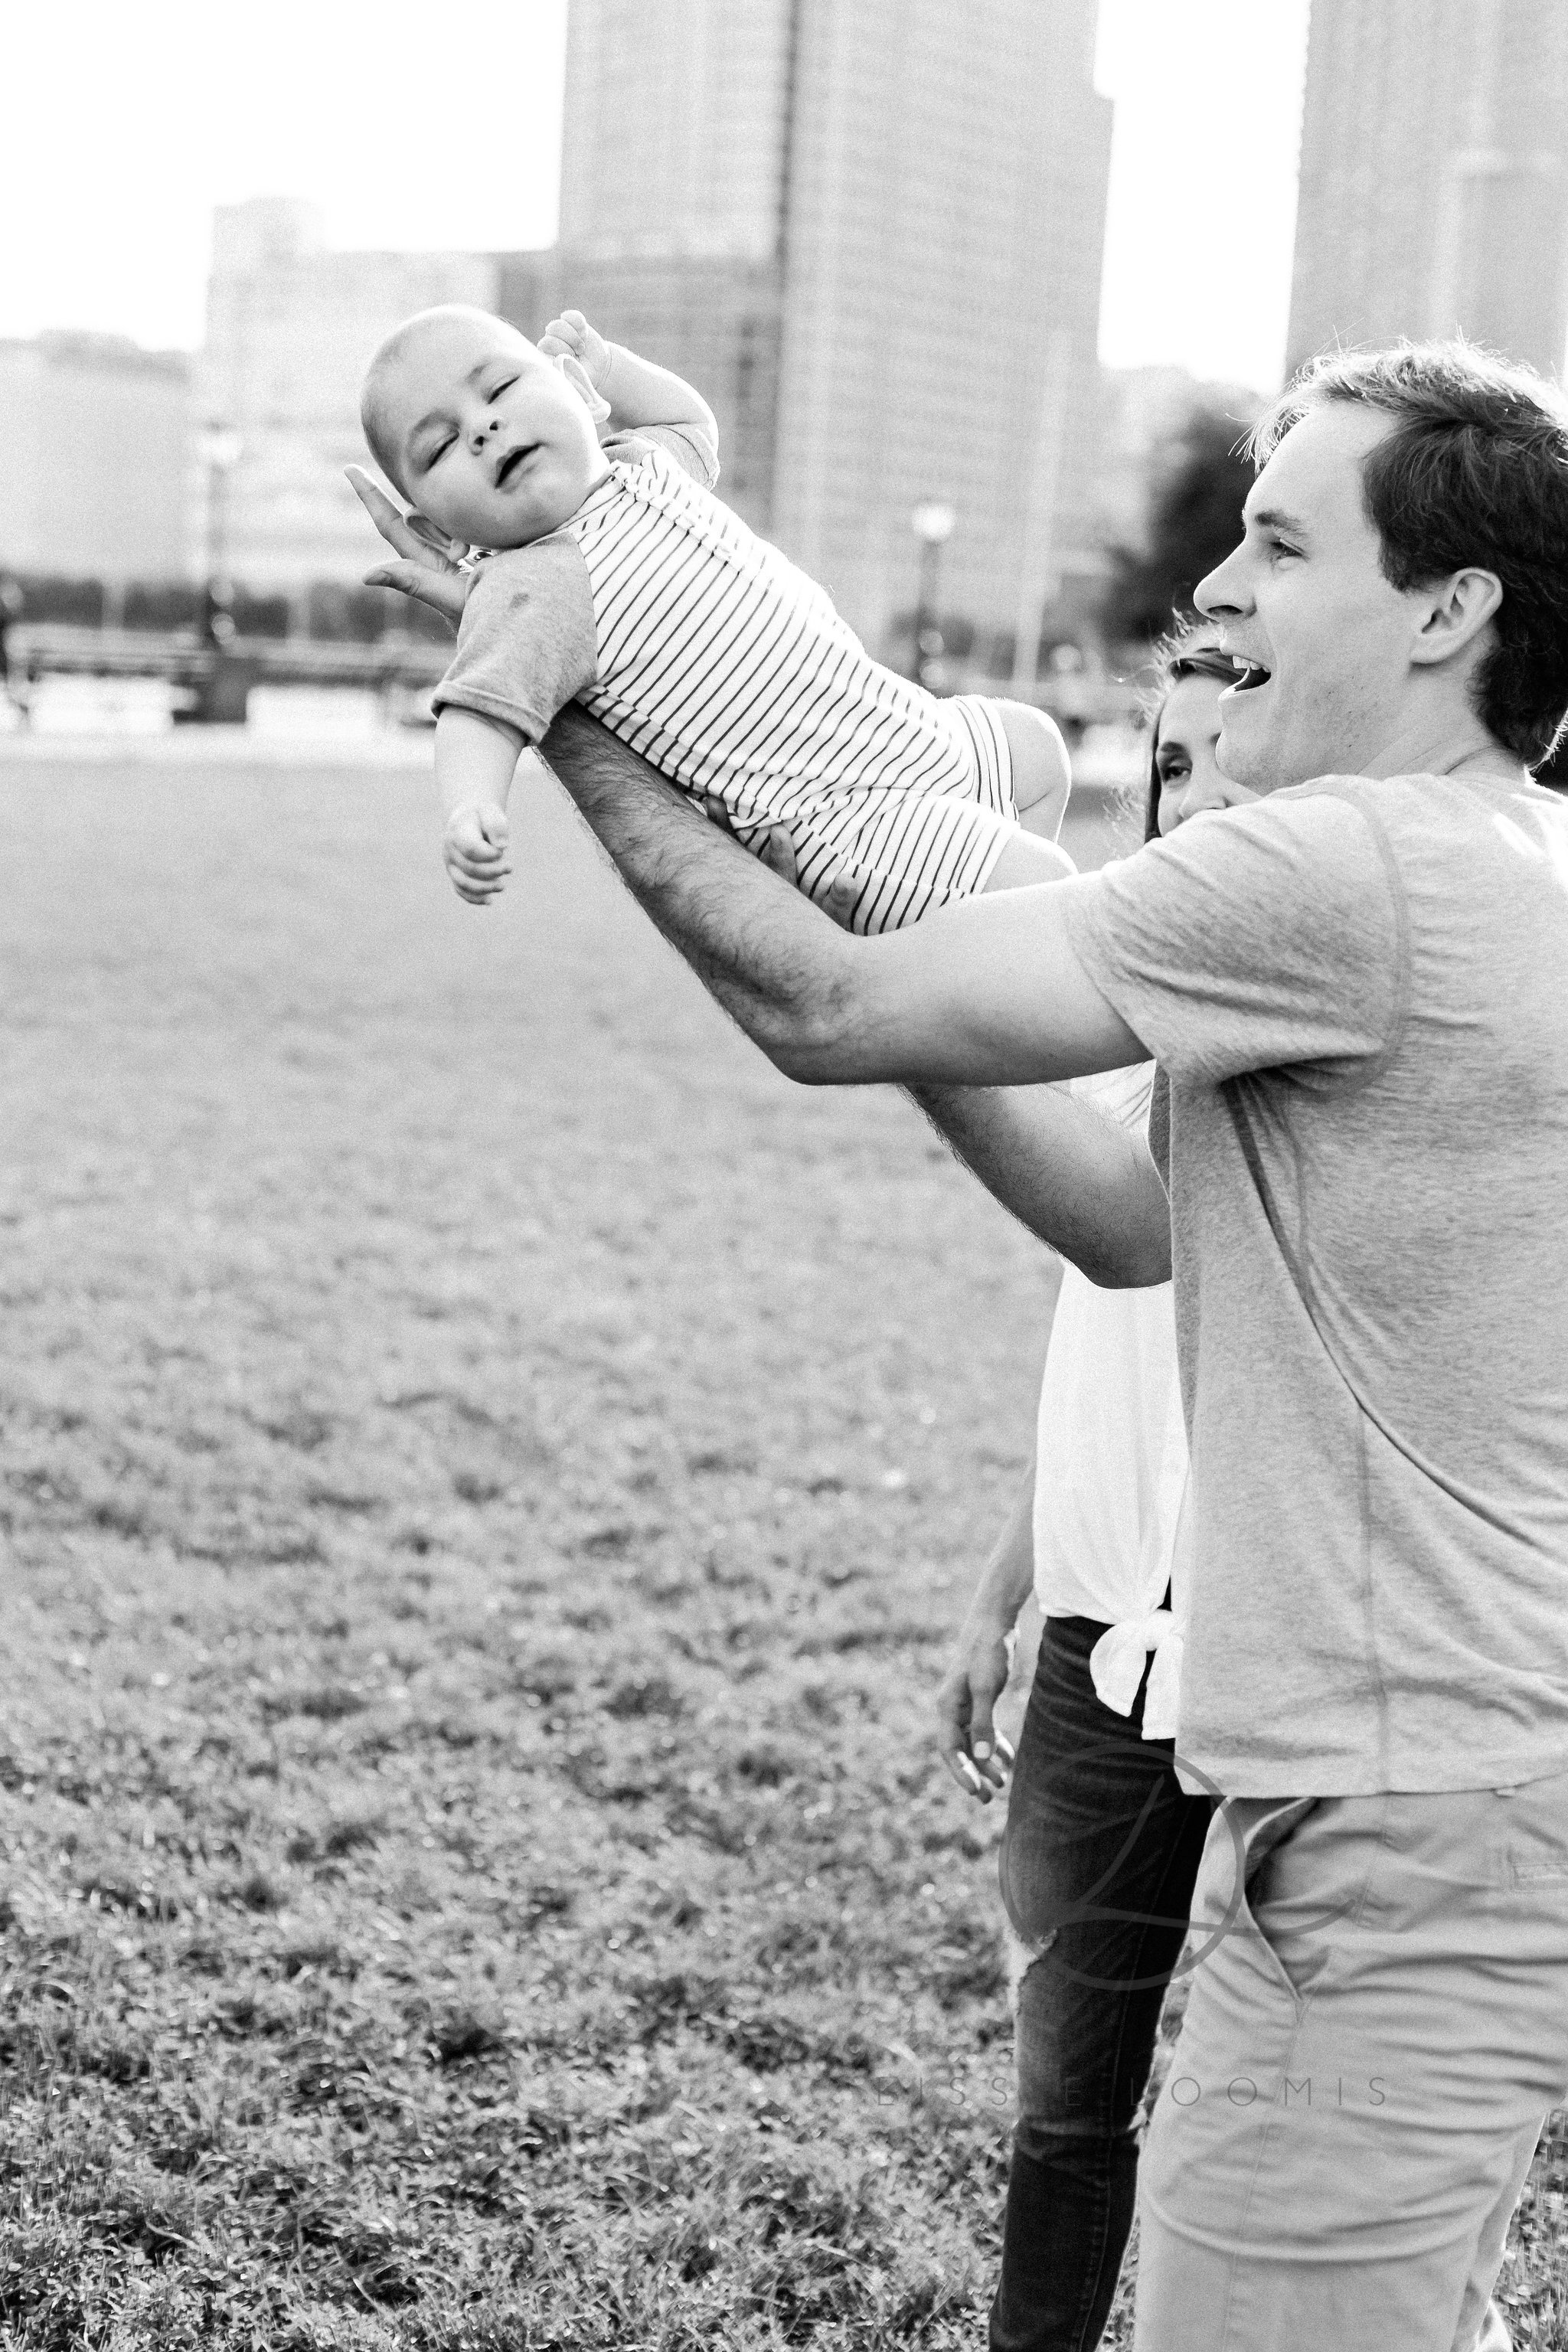 lissie-loomis-photo-newyorkcity-family-photography-baby-photographer-brooklyn33.JPG